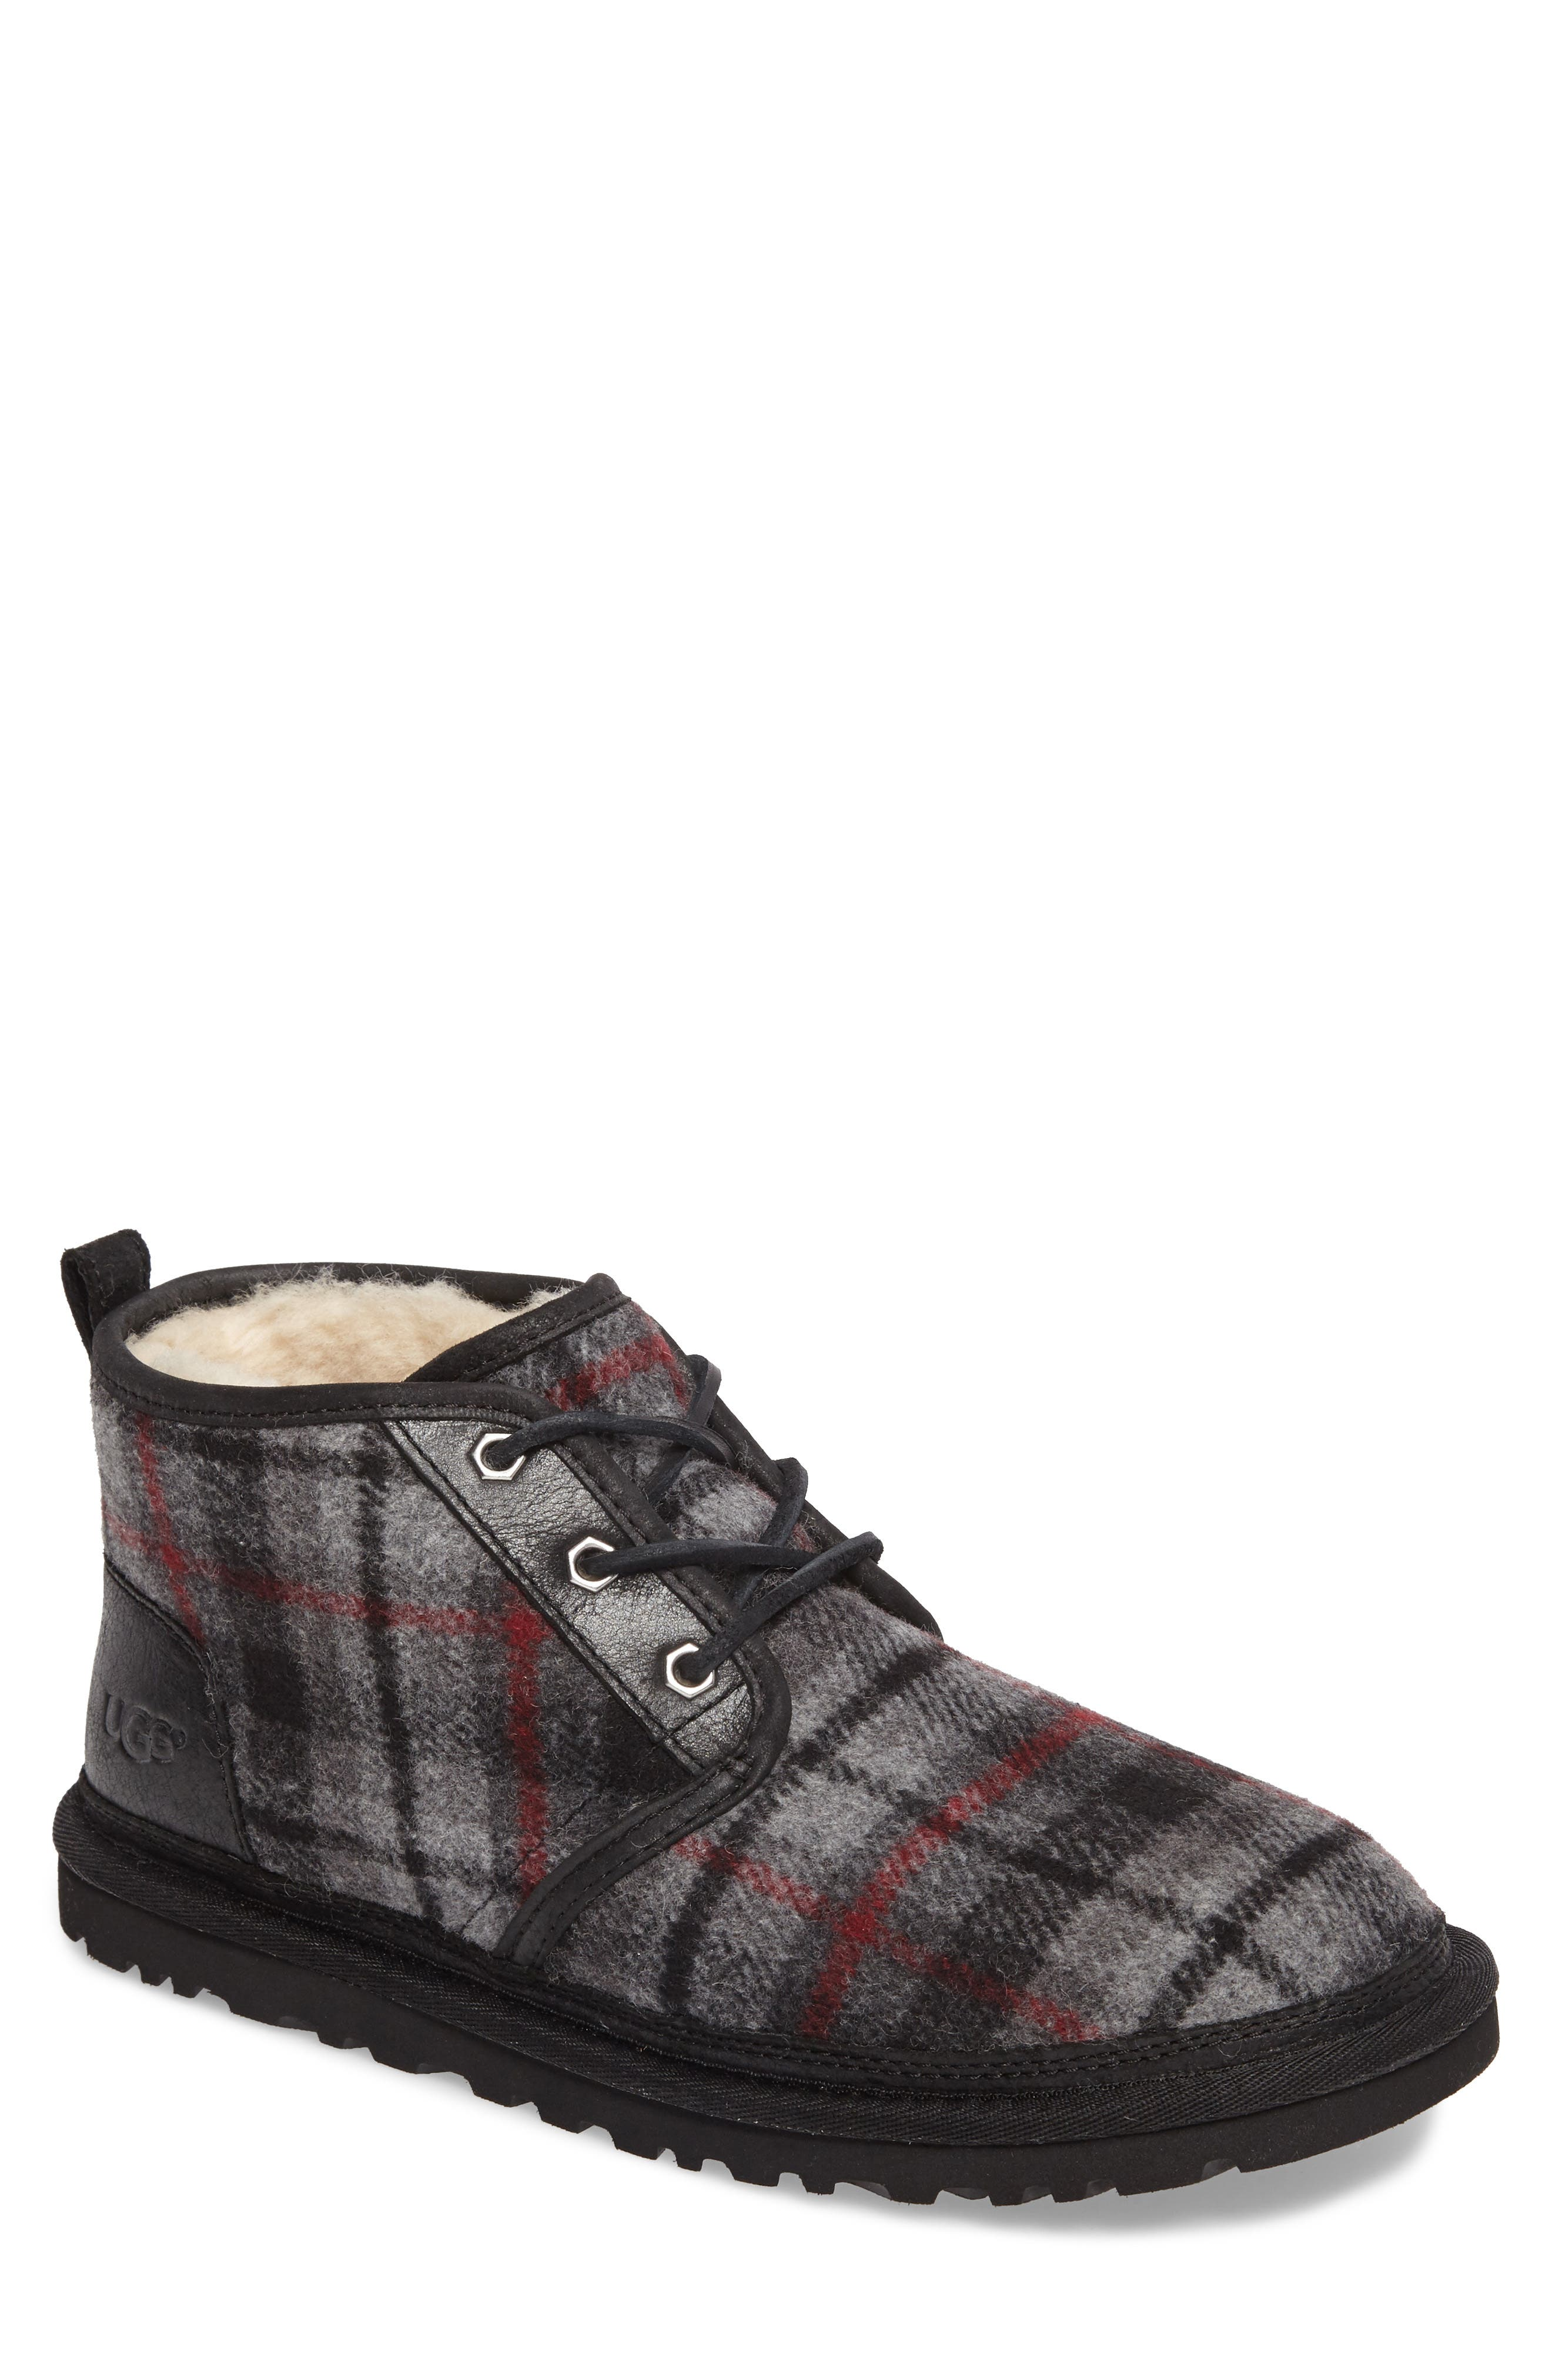 Neumel Chukka Boot,                         Main,                         color, Tartan Plaid